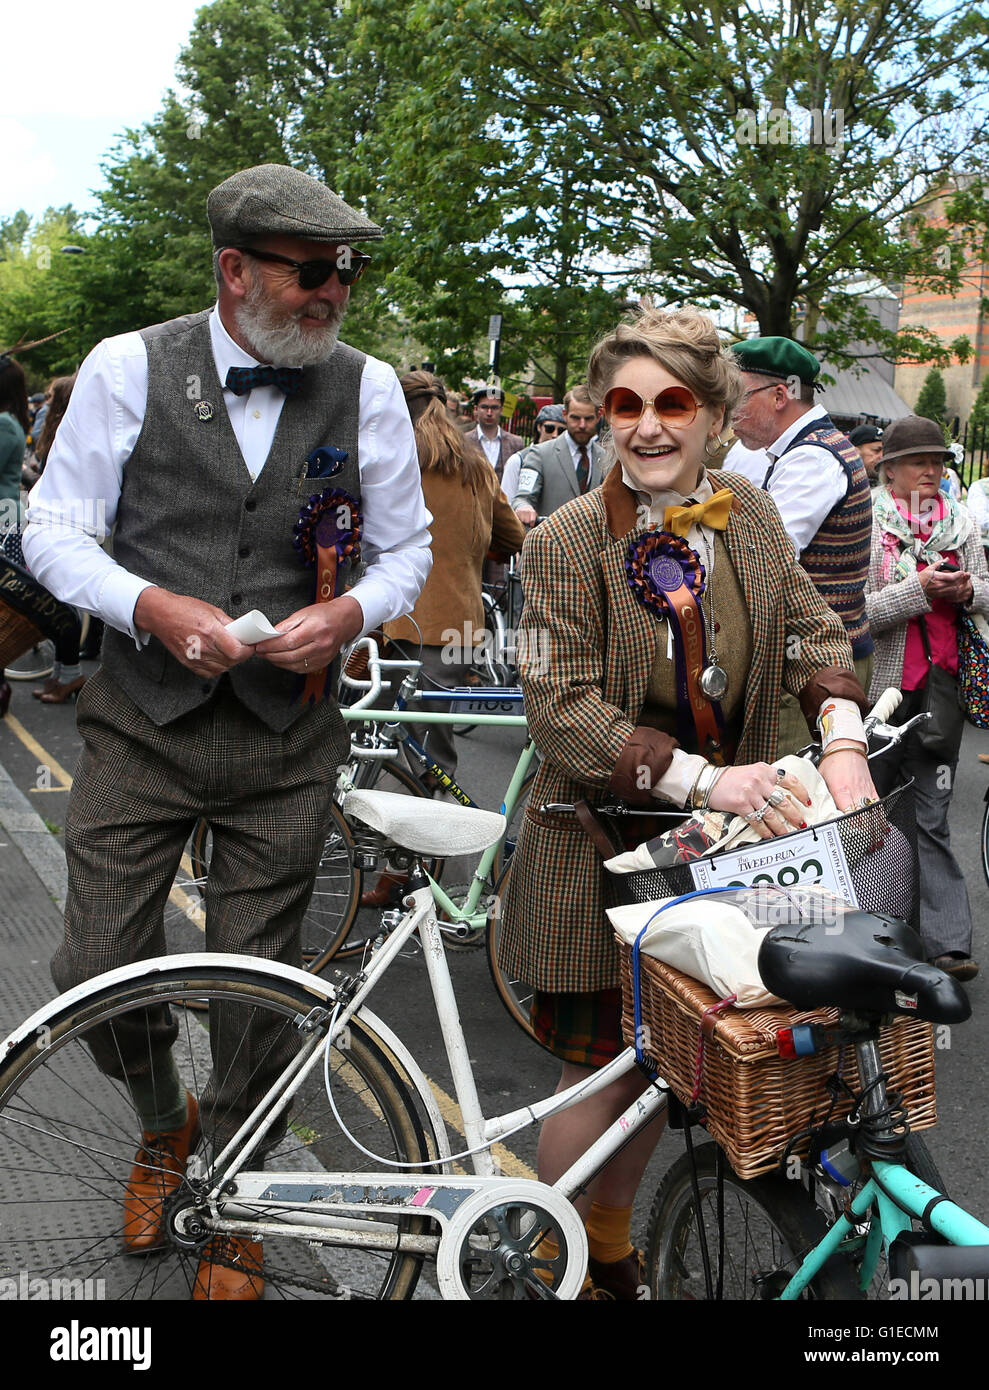 London, UK. 14th May, 2016. Participants are seen ahead of the annual Tweed Run in London, Britain on May 14, 2016. Stock Photo